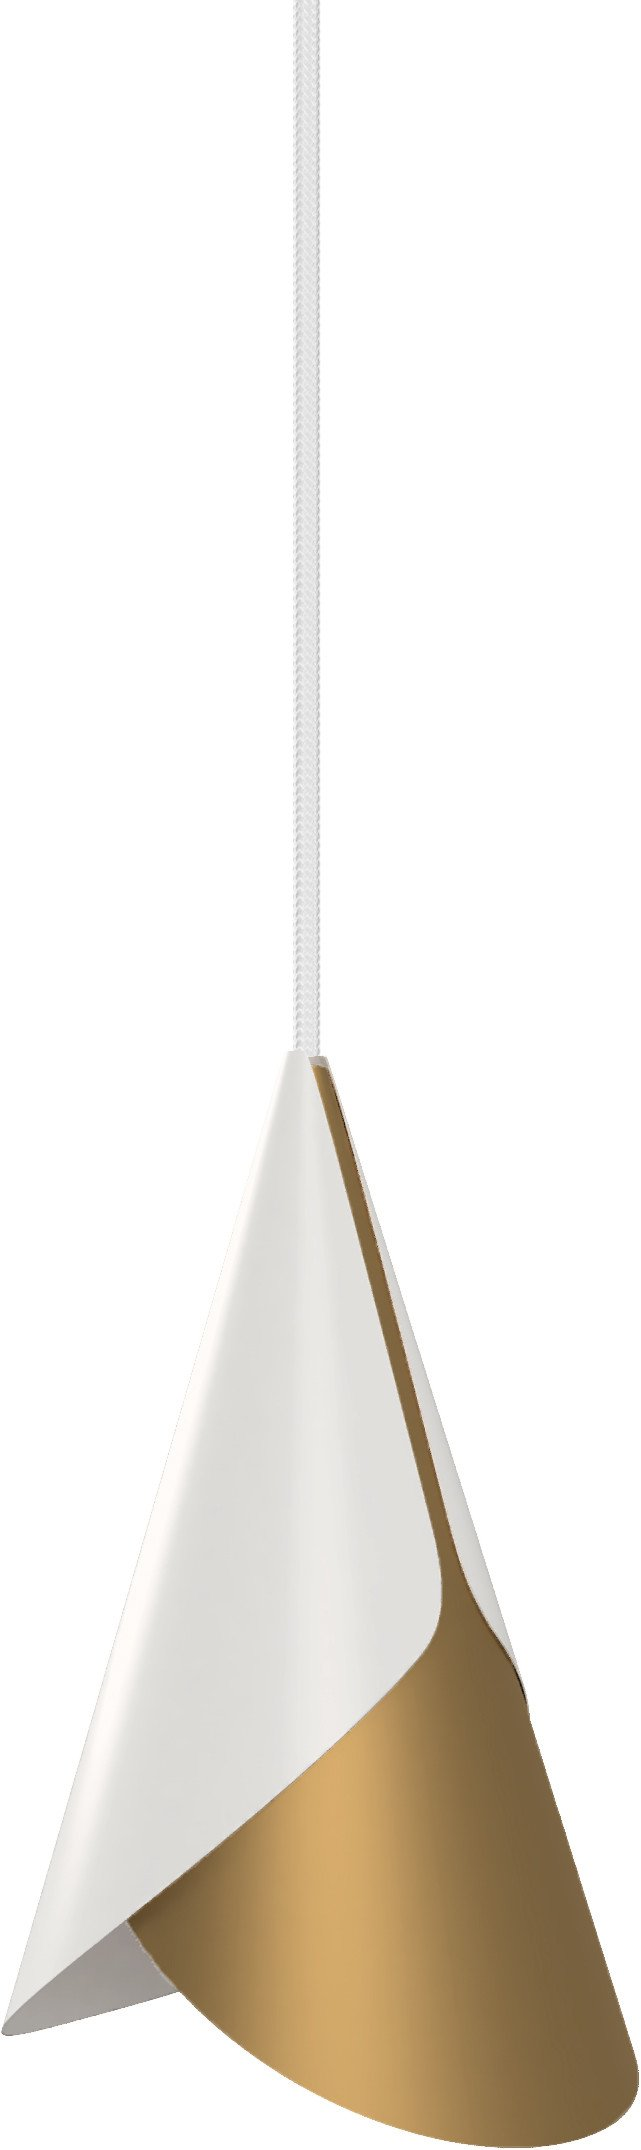 Cornet Lamp Shade White by J. J. Würtzen for UMAGE - 495570 - photo